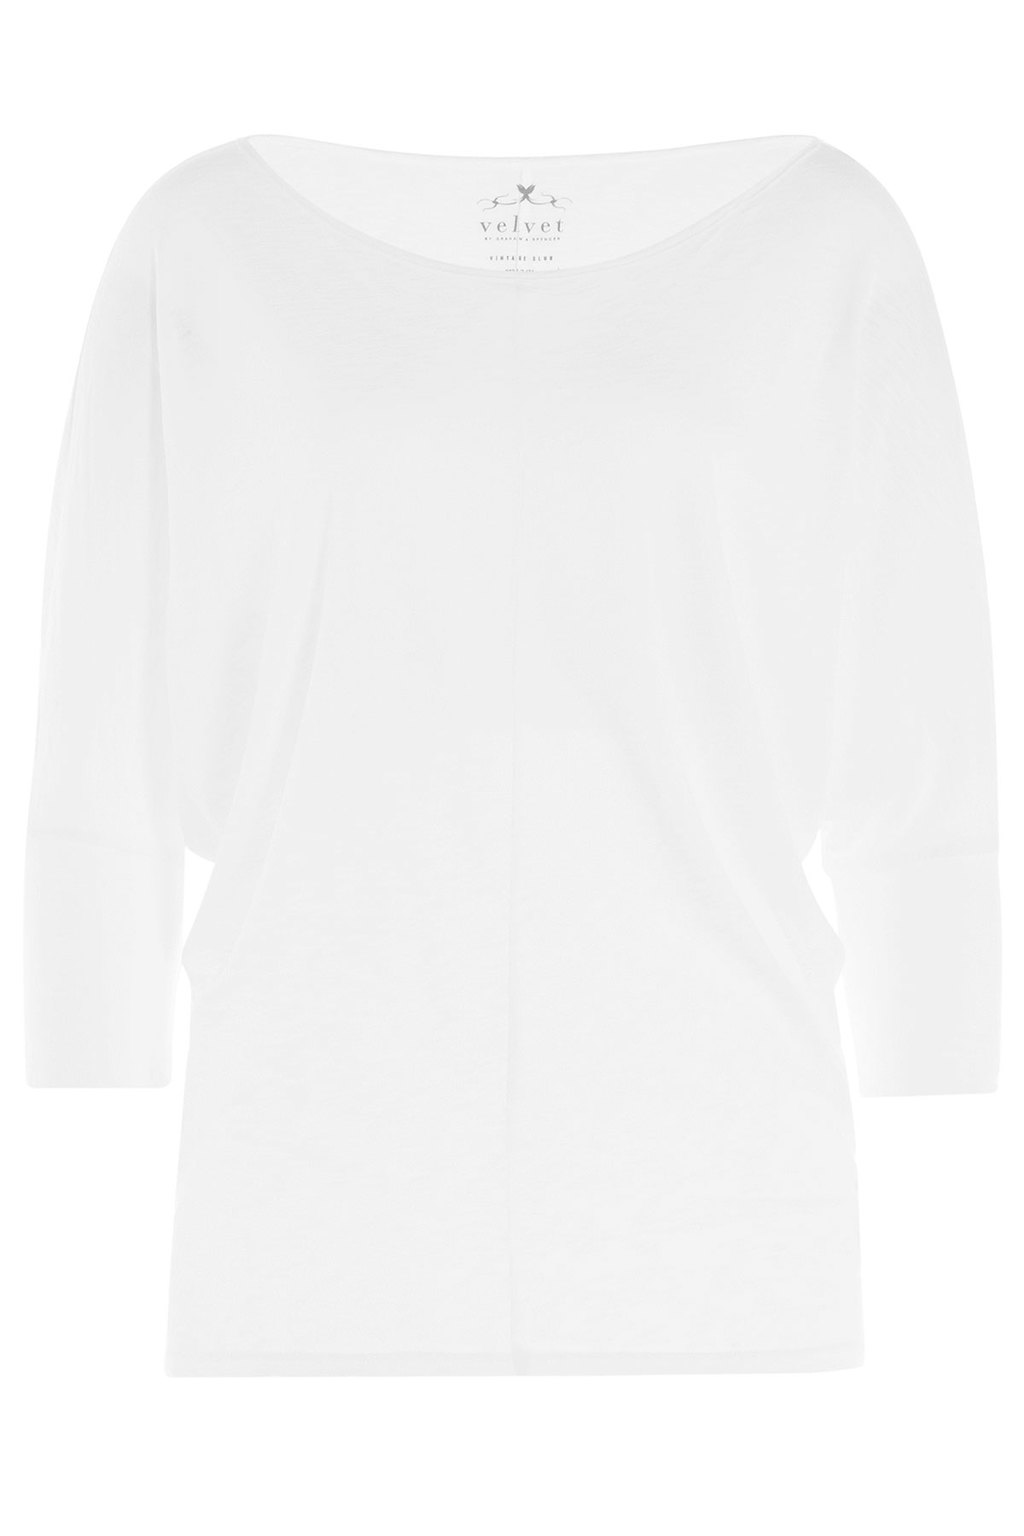 Jersey Top White - neckline: slash/boat neckline; pattern: plain; style: t-shirt; predominant colour: white; occasions: casual, creative work; length: standard; fibres: cotton - mix; fit: body skimming; sleeve length: 3/4 length; sleeve style: standard; pattern type: fabric; texture group: jersey - stretchy/drapey; season: a/w 2015; wardrobe: basic